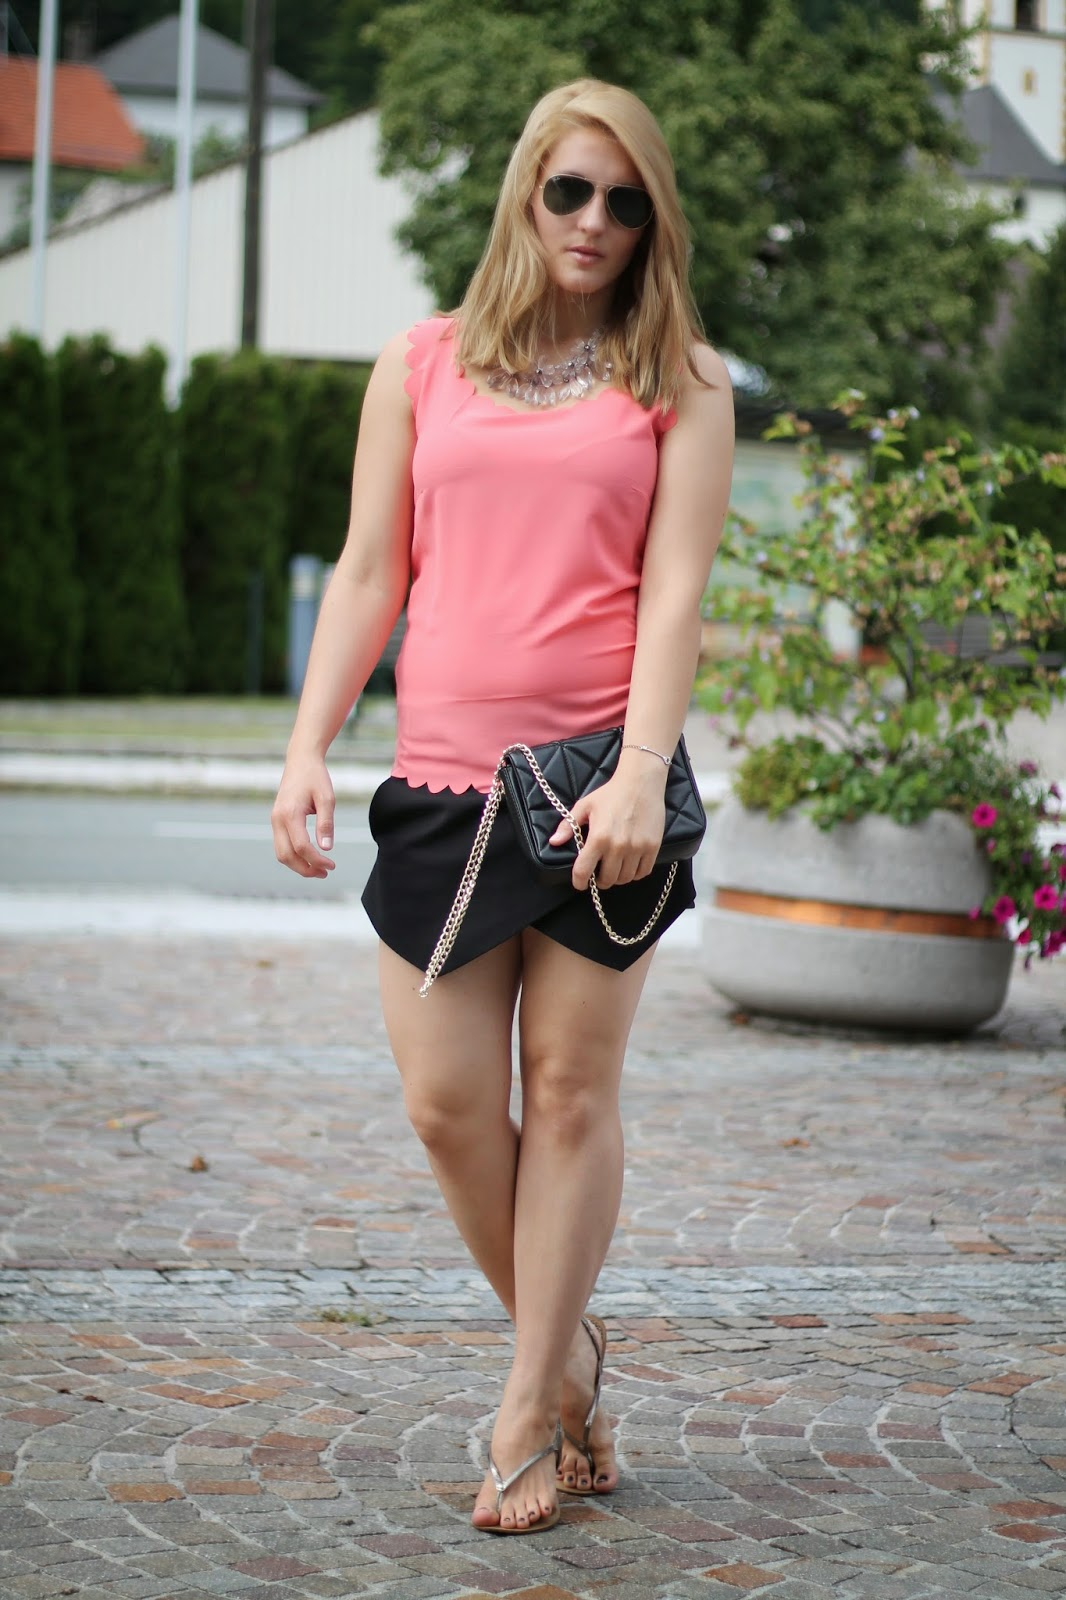 Fashionblogger Austria / Österreich / Deutsch / German / Kärnten / Carinthia / Klagenfurt / Köttmannsdorf / Spring Look / Classy / Edgy / Summer / Summer Style 2014 / Summer Look / Fashionista Look /   / Summer Look / Skorts / Black Skorts Zara / Top Oasap / Streetstyle / Ray Ban Aviator / Elegant Look / Look for the evening / Apricot Top / Silver Flats /